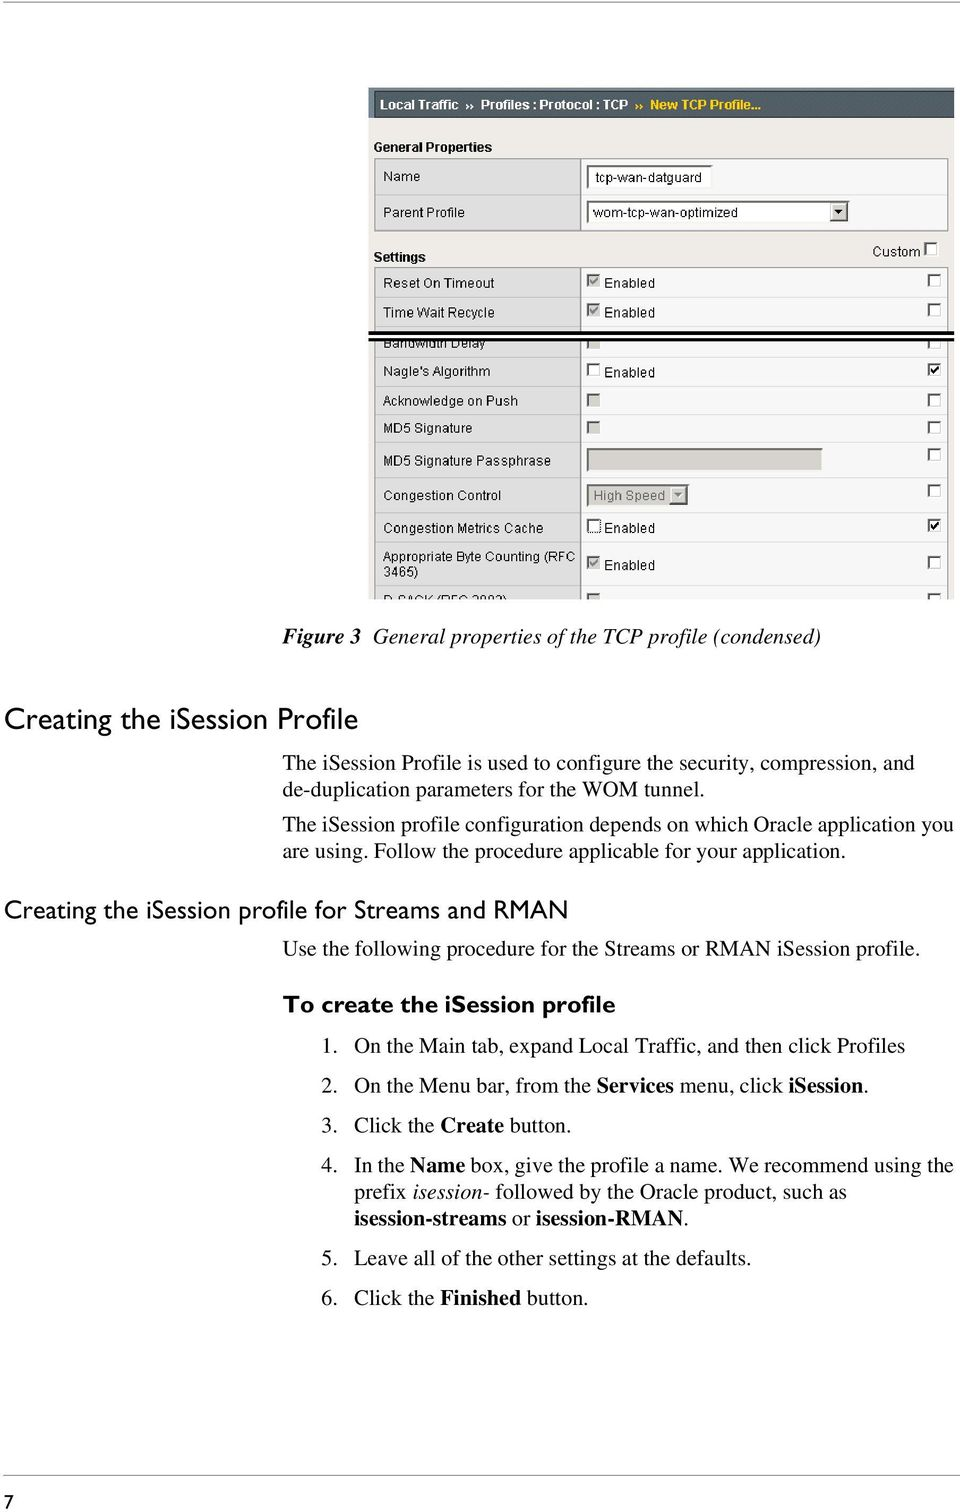 Creating the isession profile for Streams and RMAN Use the following procedure for the Streams or RMAN isession profile. To create the isession profile 1.